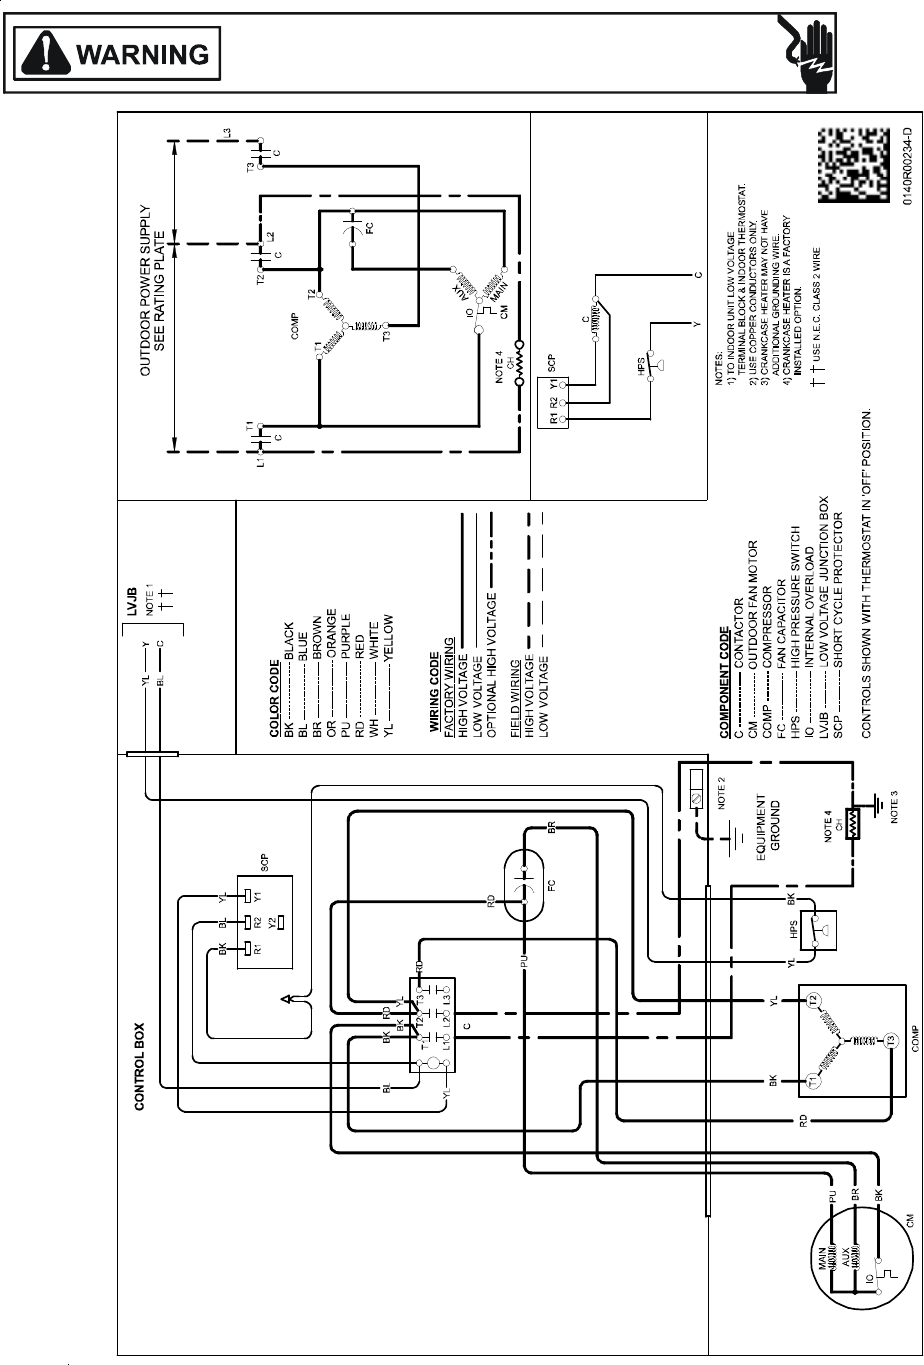 Beautiful goodman air handler wiring diagram images images for goodman air handler troubleshooting  sc 1 st  gandul : goodman thermostat wiring - yogabreezes.com